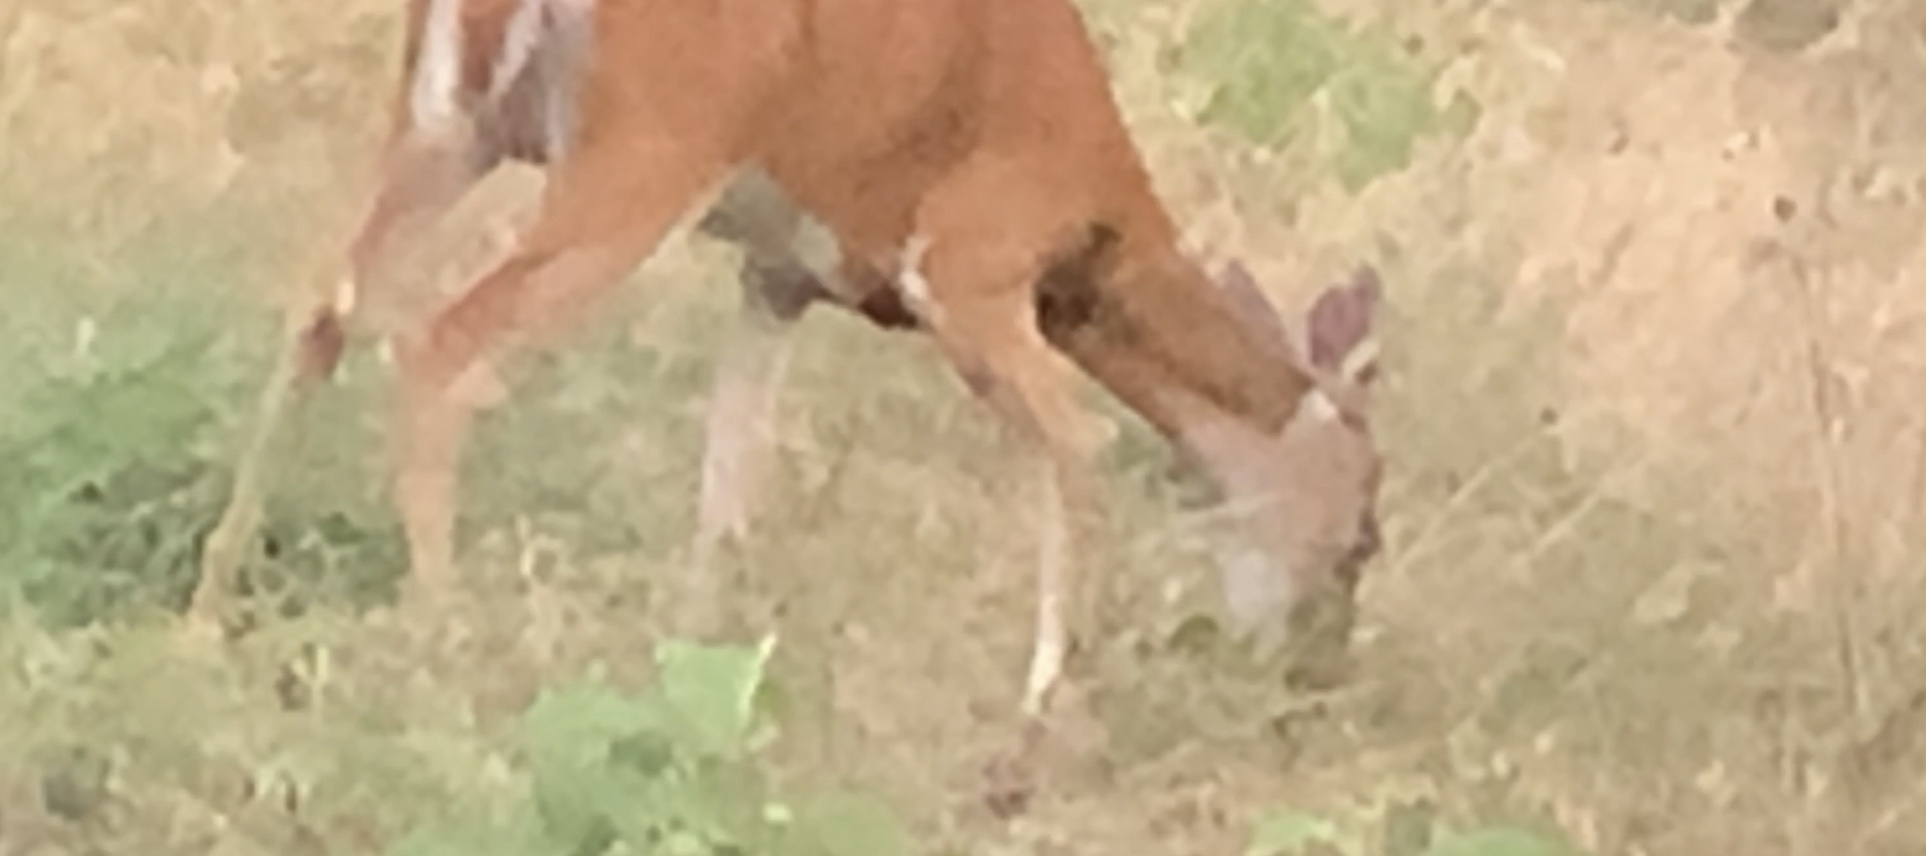 What Are Deer Eating On July 5?